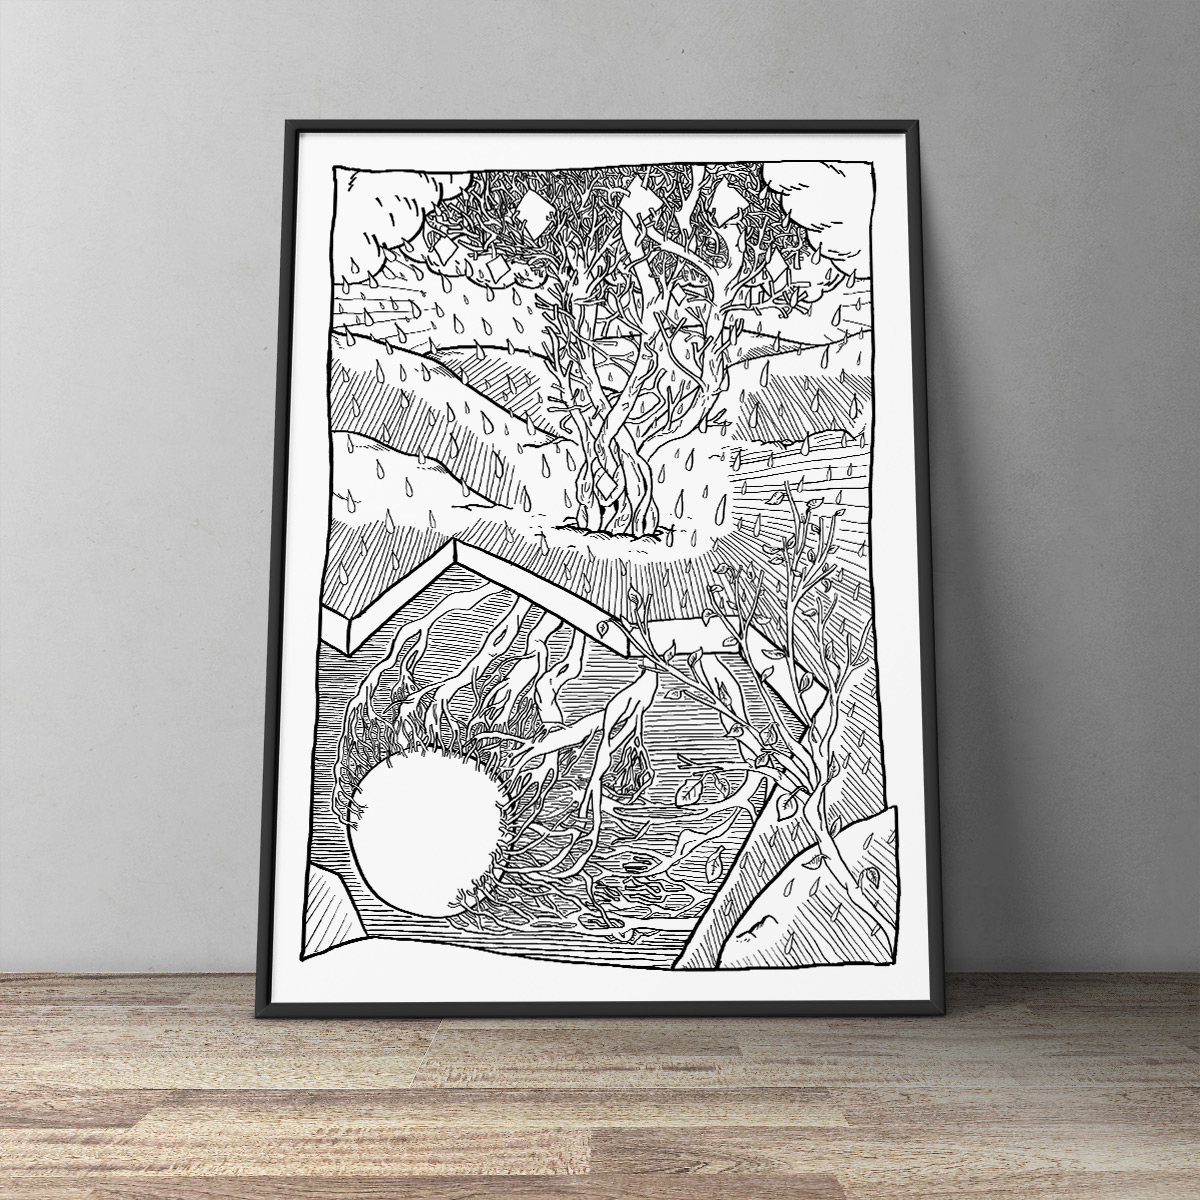 art-prints, gliceé, aesthetic, illustrative, landscape, monochrome, botany, cartoons, nature, black, white, ink, paper, black-and-white, contemporary-art, danish, decorative, design, flowers, modern, modern-art, nordic, plants, posters, prints, scandinavien, scenery, sketch, Buy original high quality art. Paintings, drawings, limited edition prints & posters by talented artists.